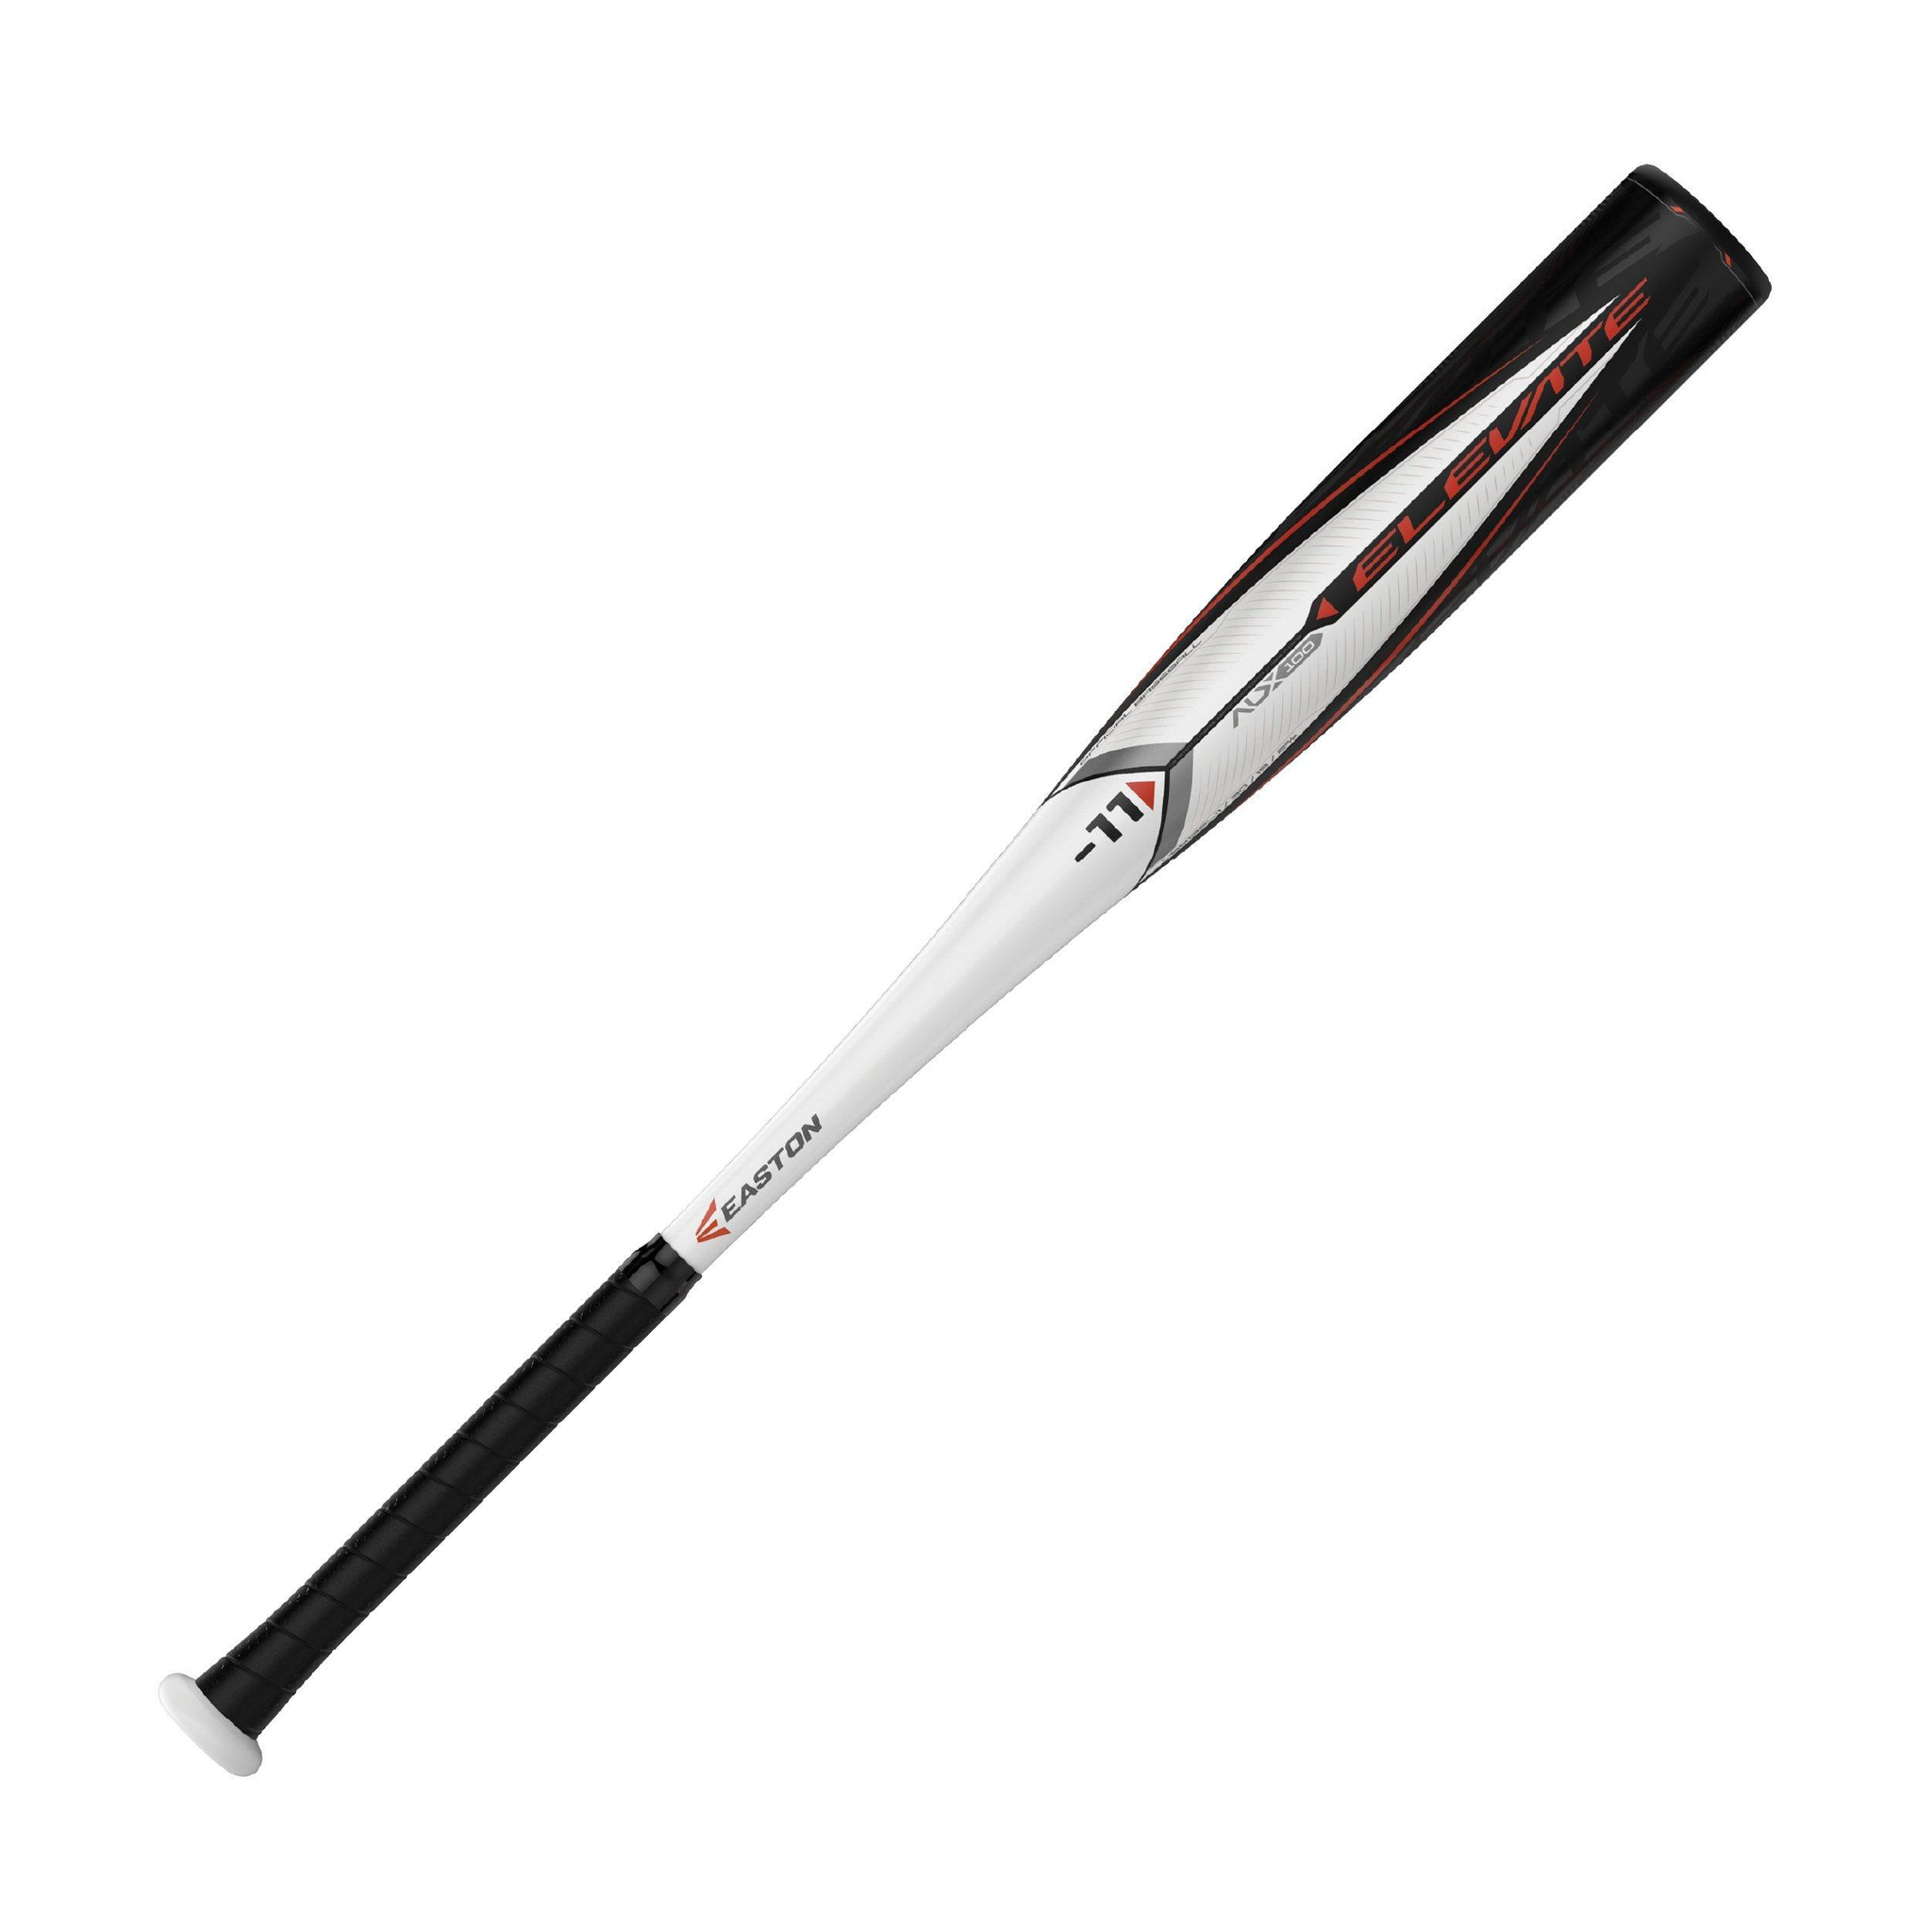 Easton Elevate -11 USA Baseball Bat